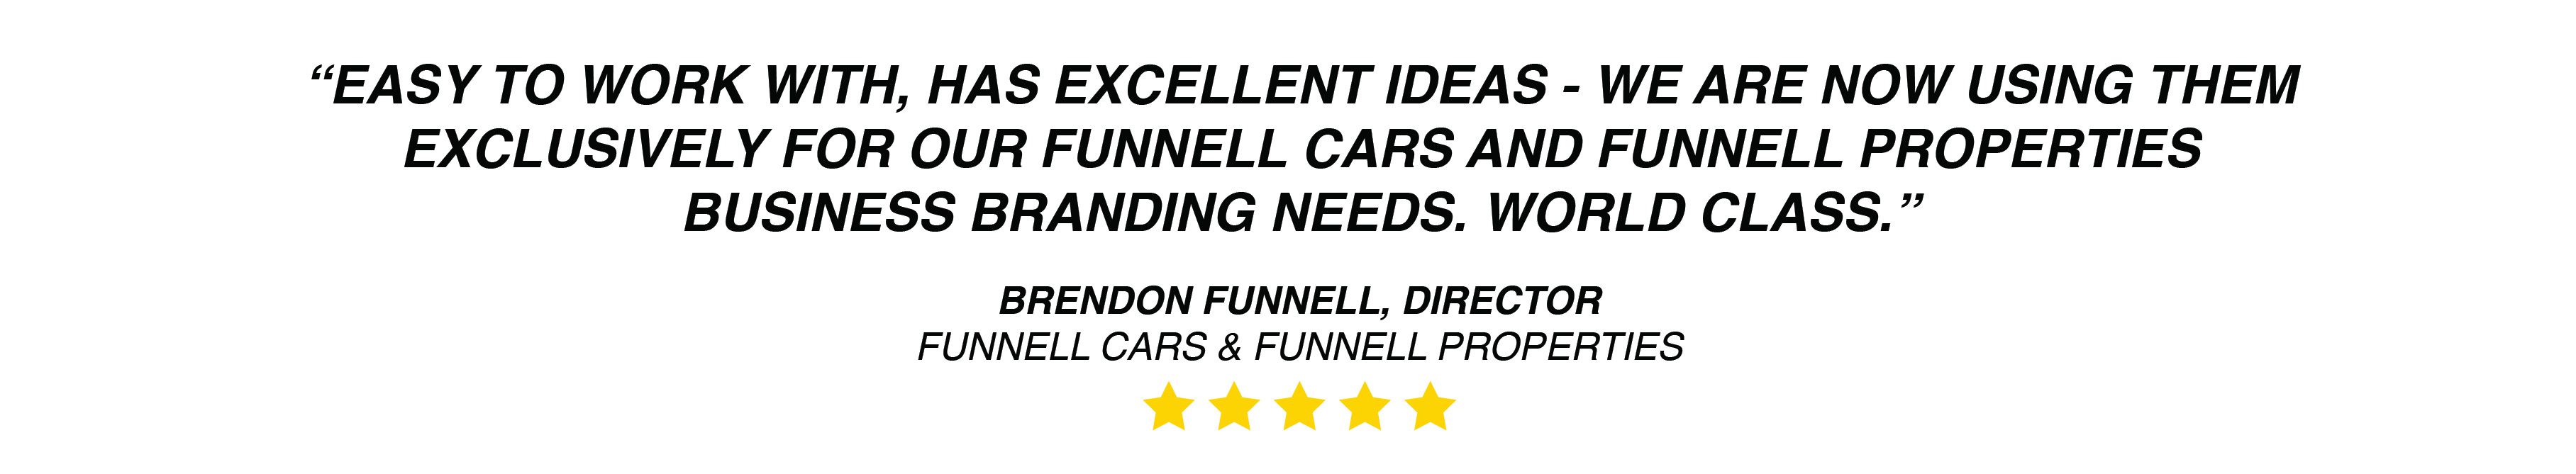 Funnell Cars